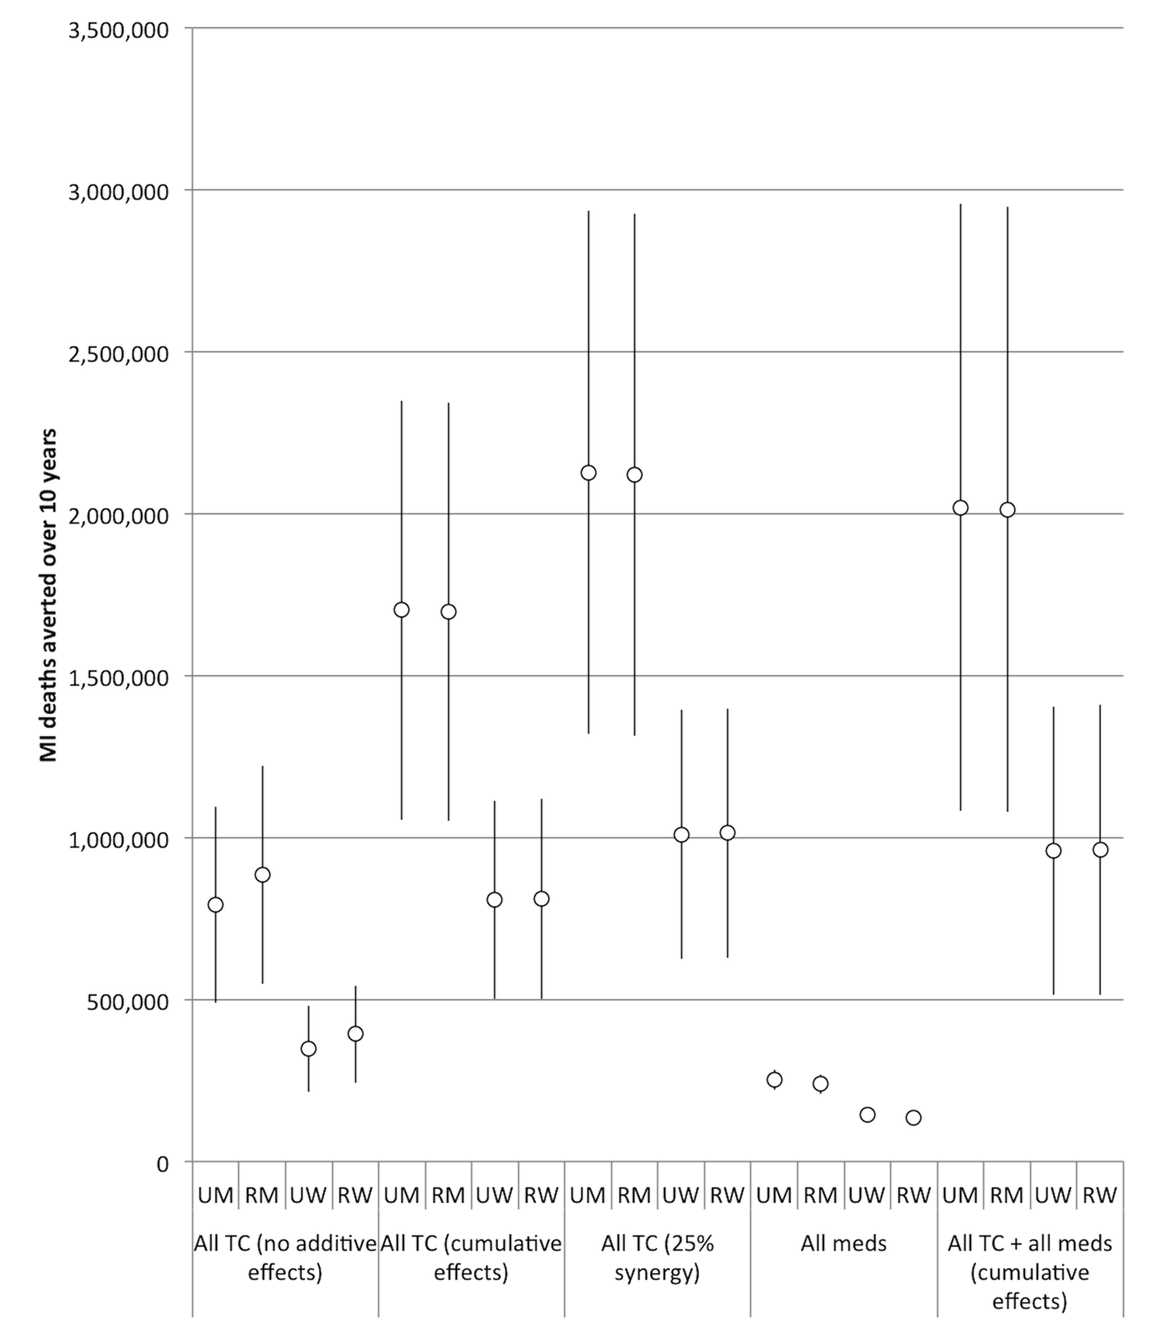 Impact of combining interventions on future myocardial infarction deaths, 2013–2022.